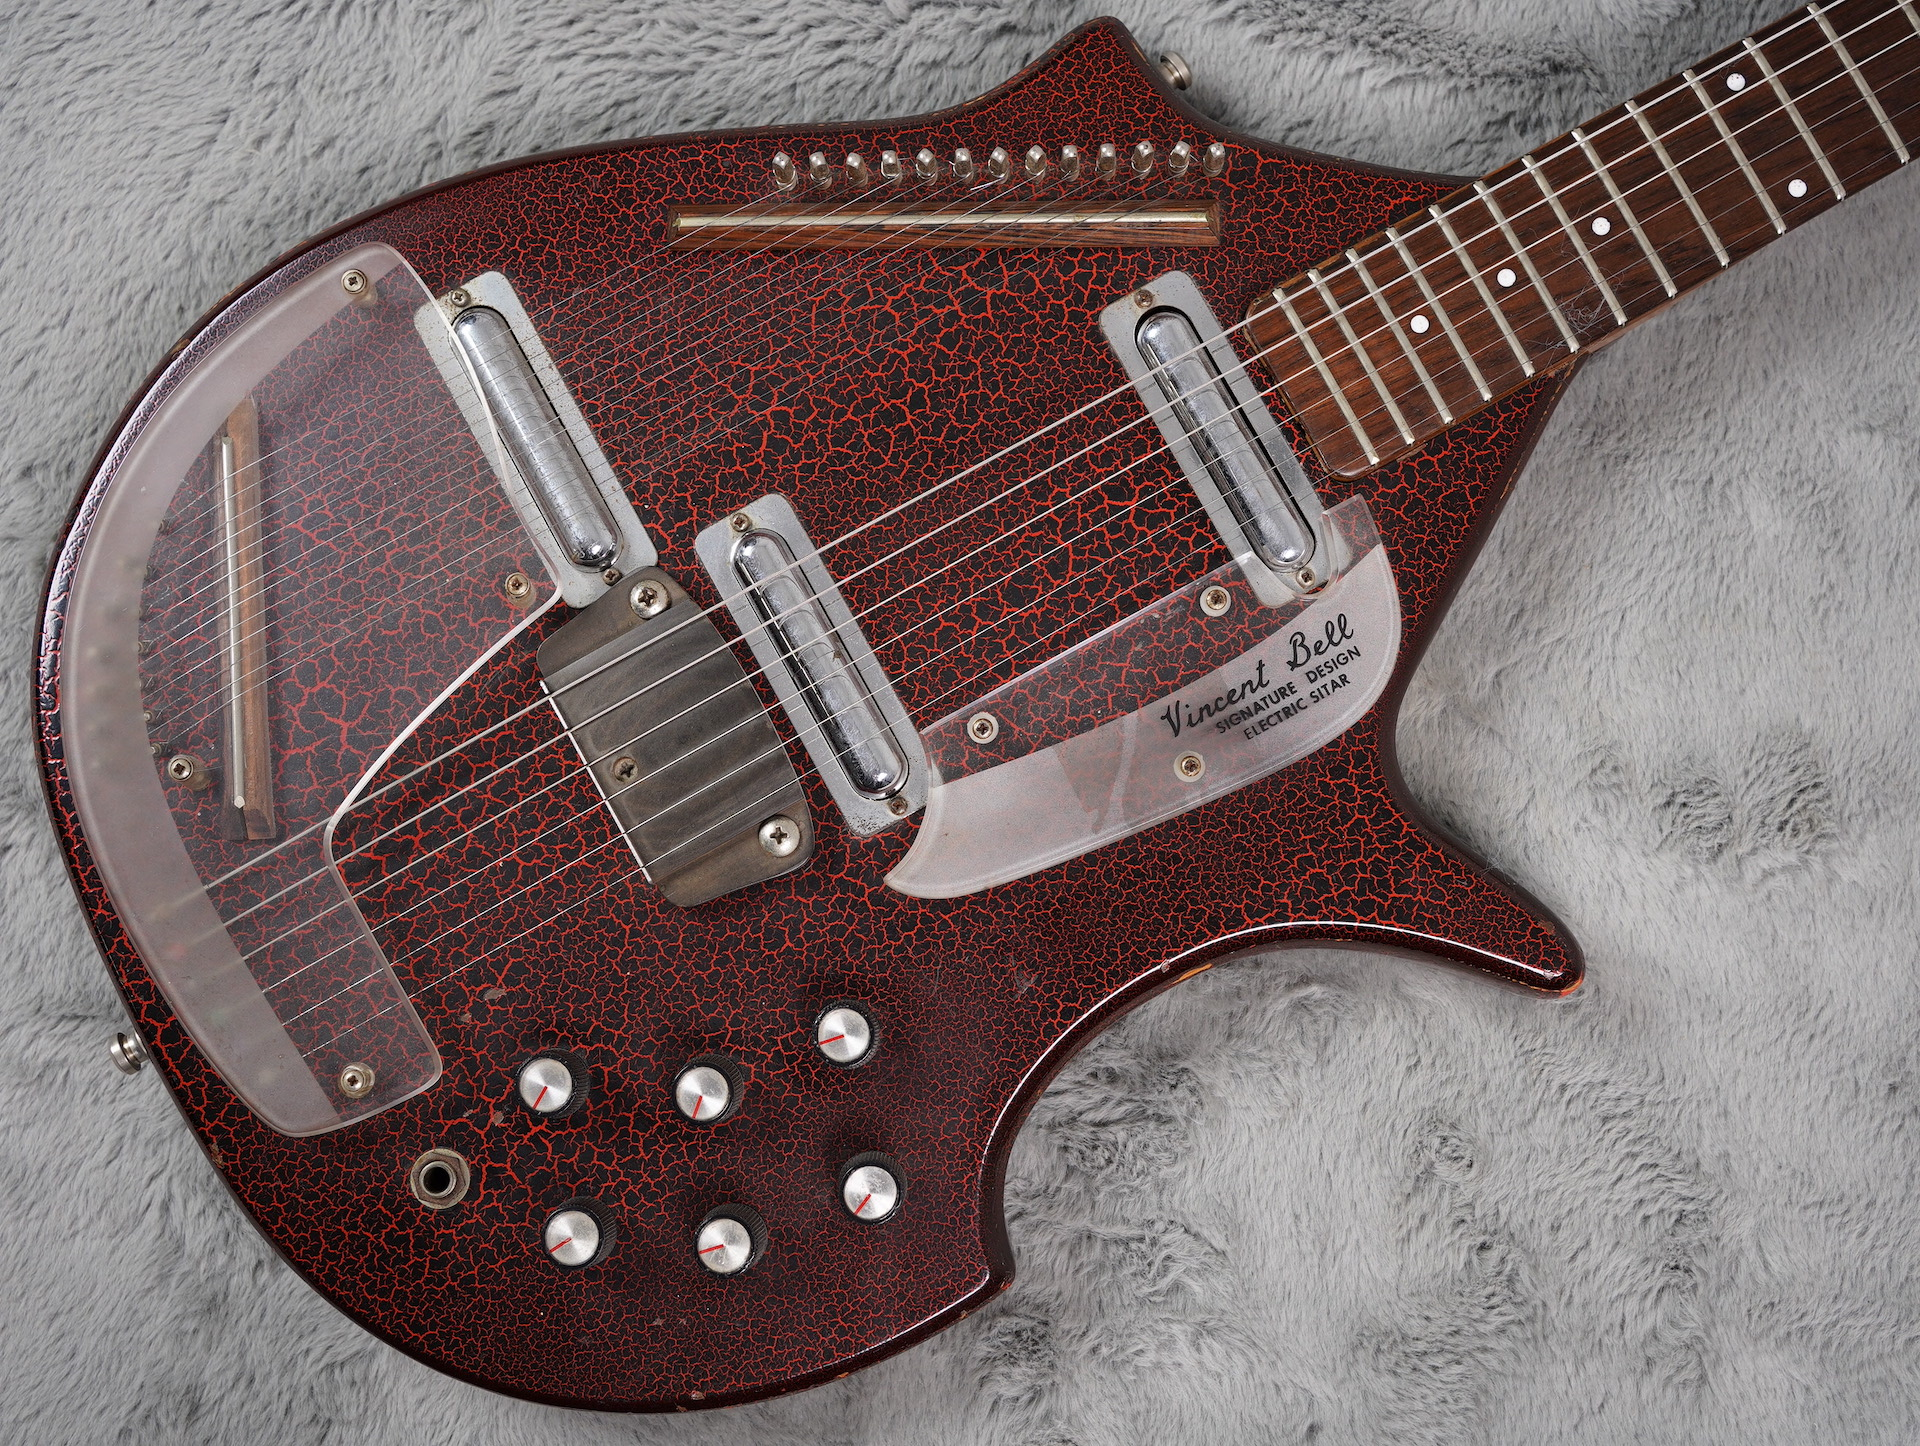 1967 Coral Sitar, ex Wayne Hussey and Adrian Utley + HSC